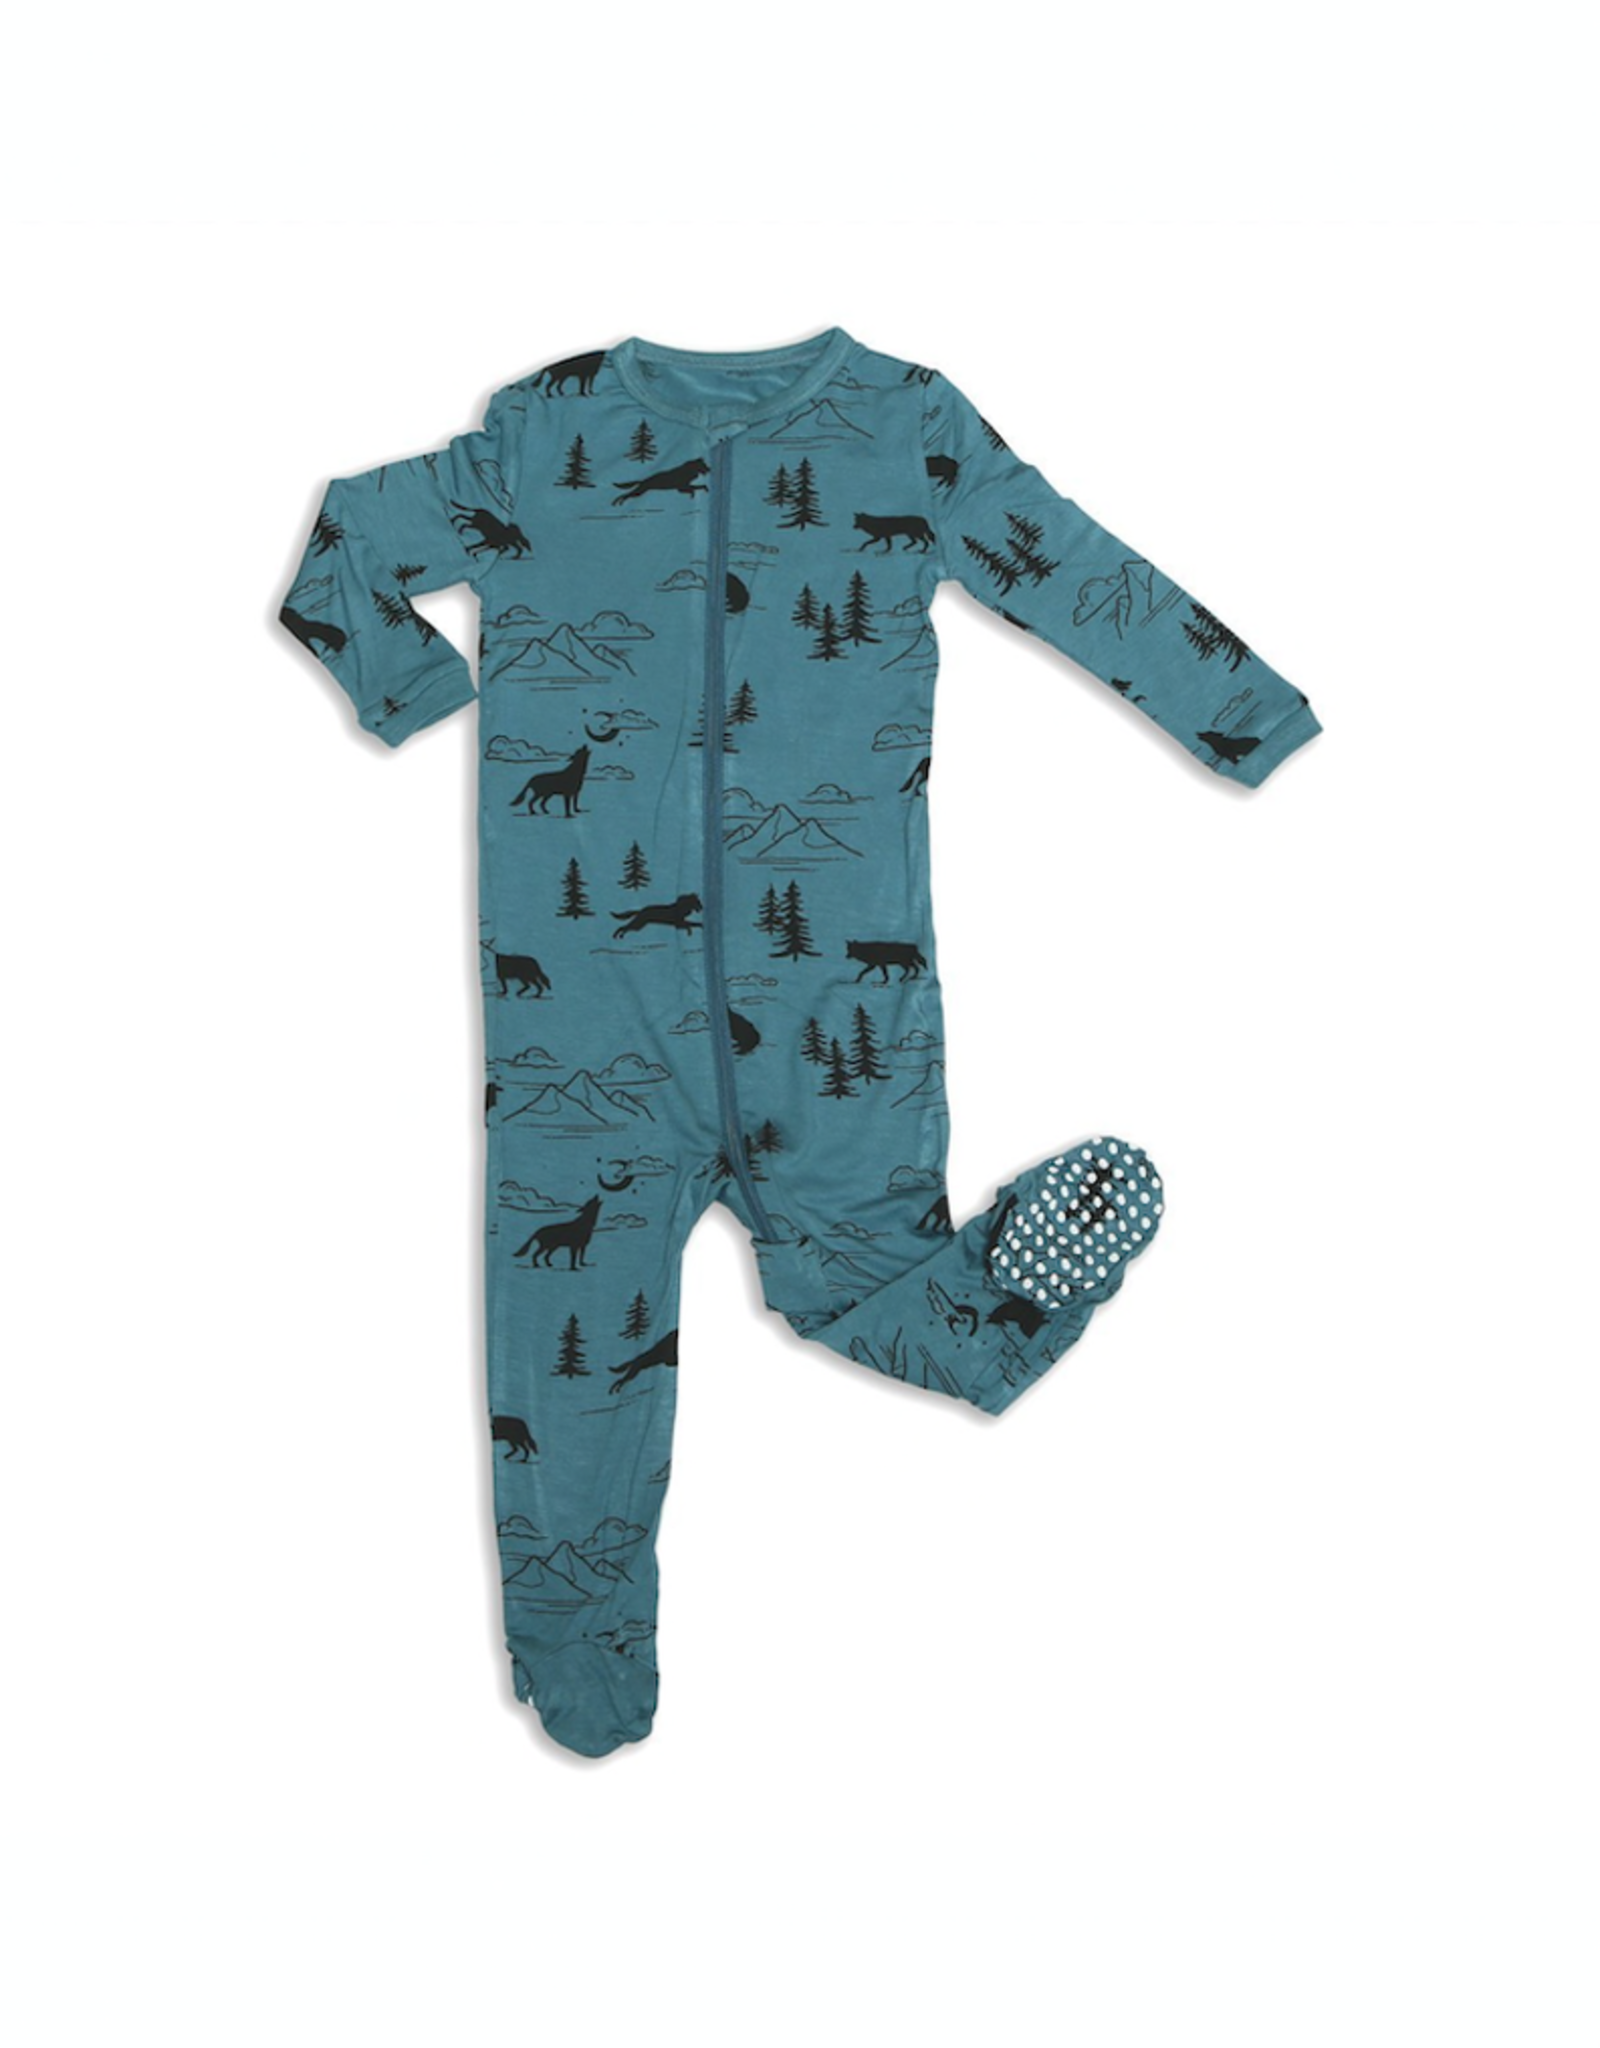 Silkberry Baby Silkberry Baby, Bamboo Zip-up Footed Sleeper, Call of the Wild Print